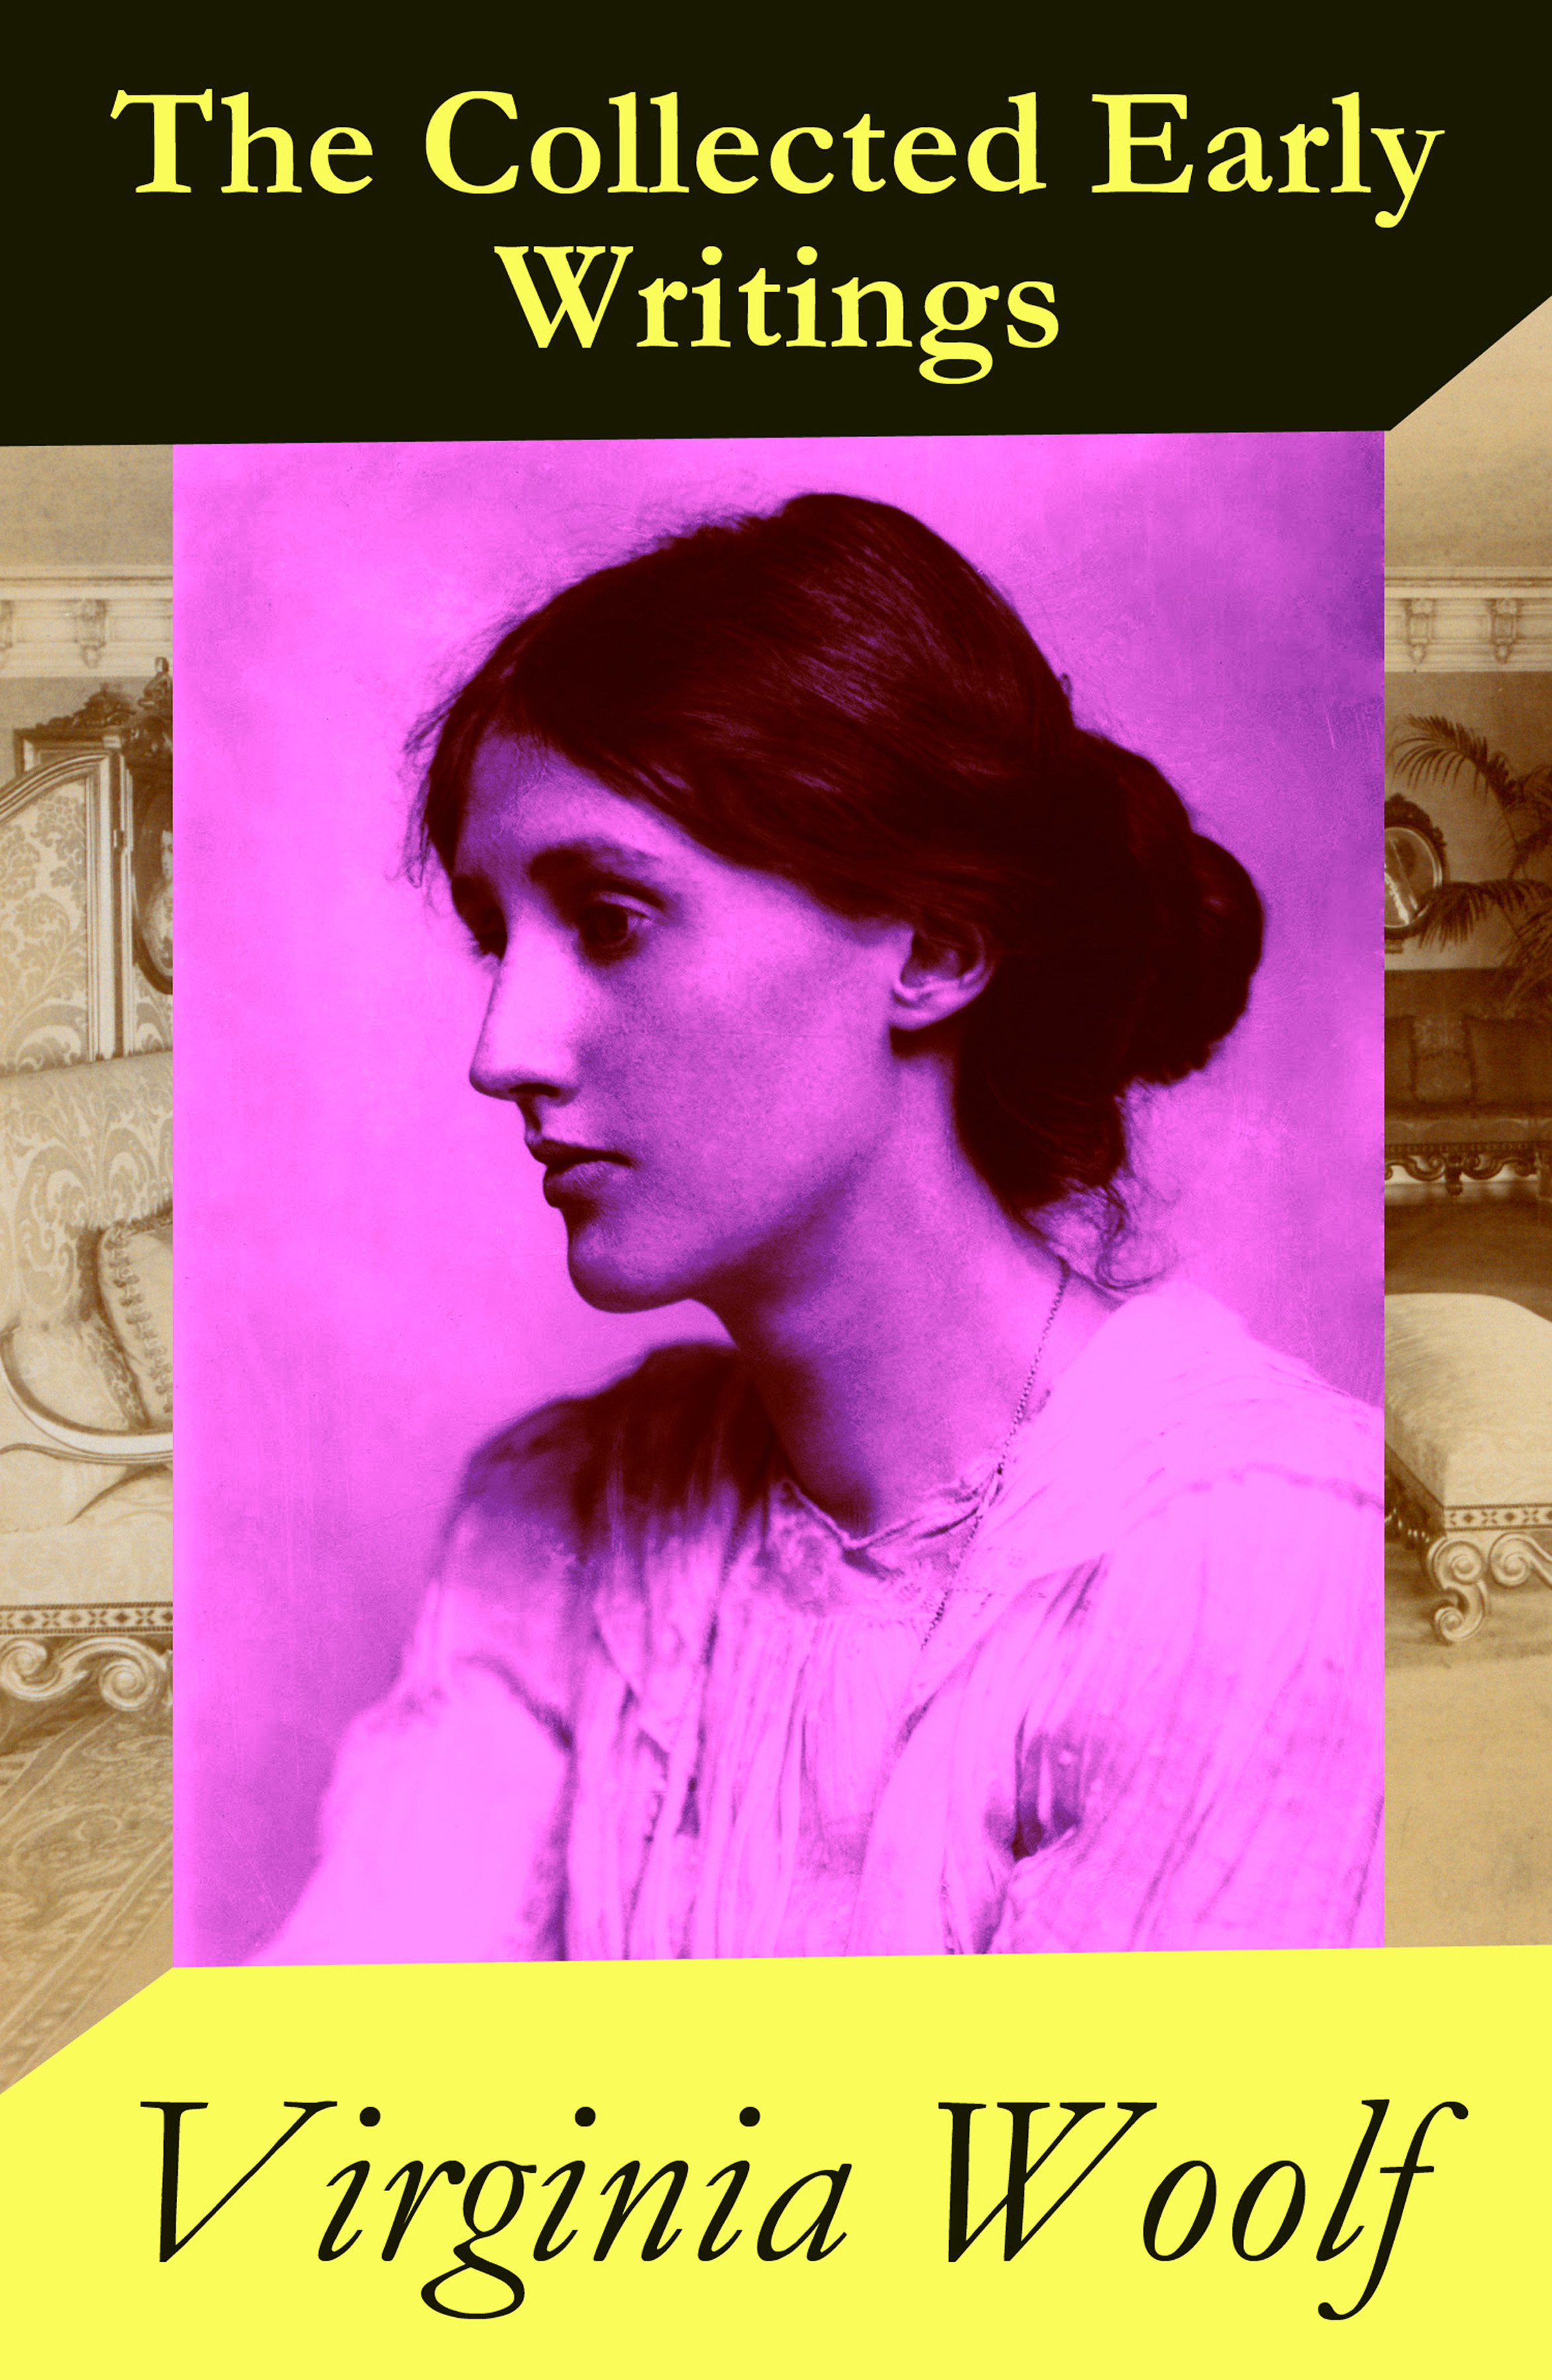 Virginia Woolf The Collected Early Writings: The Voyage Out + Night and Day + Monday or Tuesday and Other Short Stories + Jacob's Room (4 books in 1 ebook) woolf v night and day isbn 9785521057955